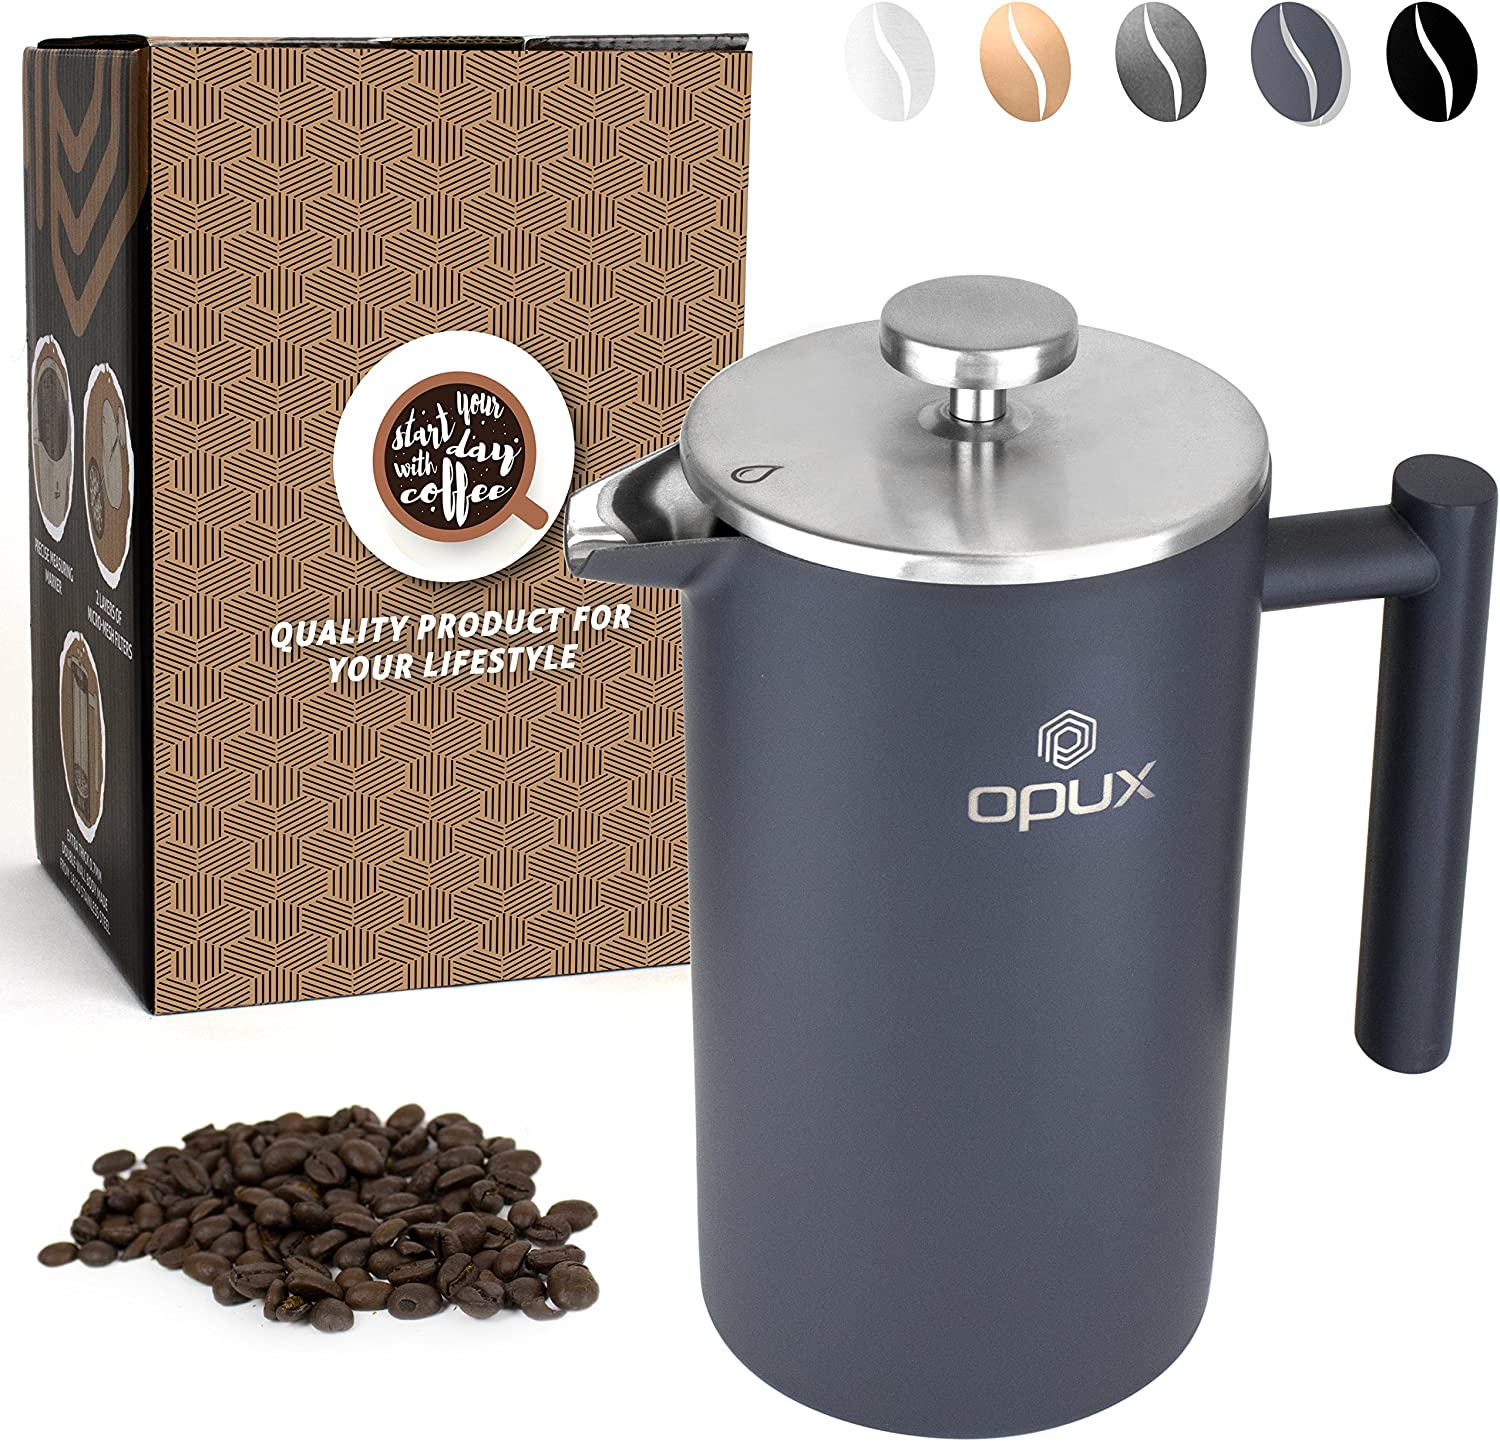 OPUX Premium Stainless Steel French Press, Double Wall Coffee Maker Thermal Insulated Press Pot 34 fl oz 1 Liter, Dishwasher Safe, Extra Filters Matte Grey